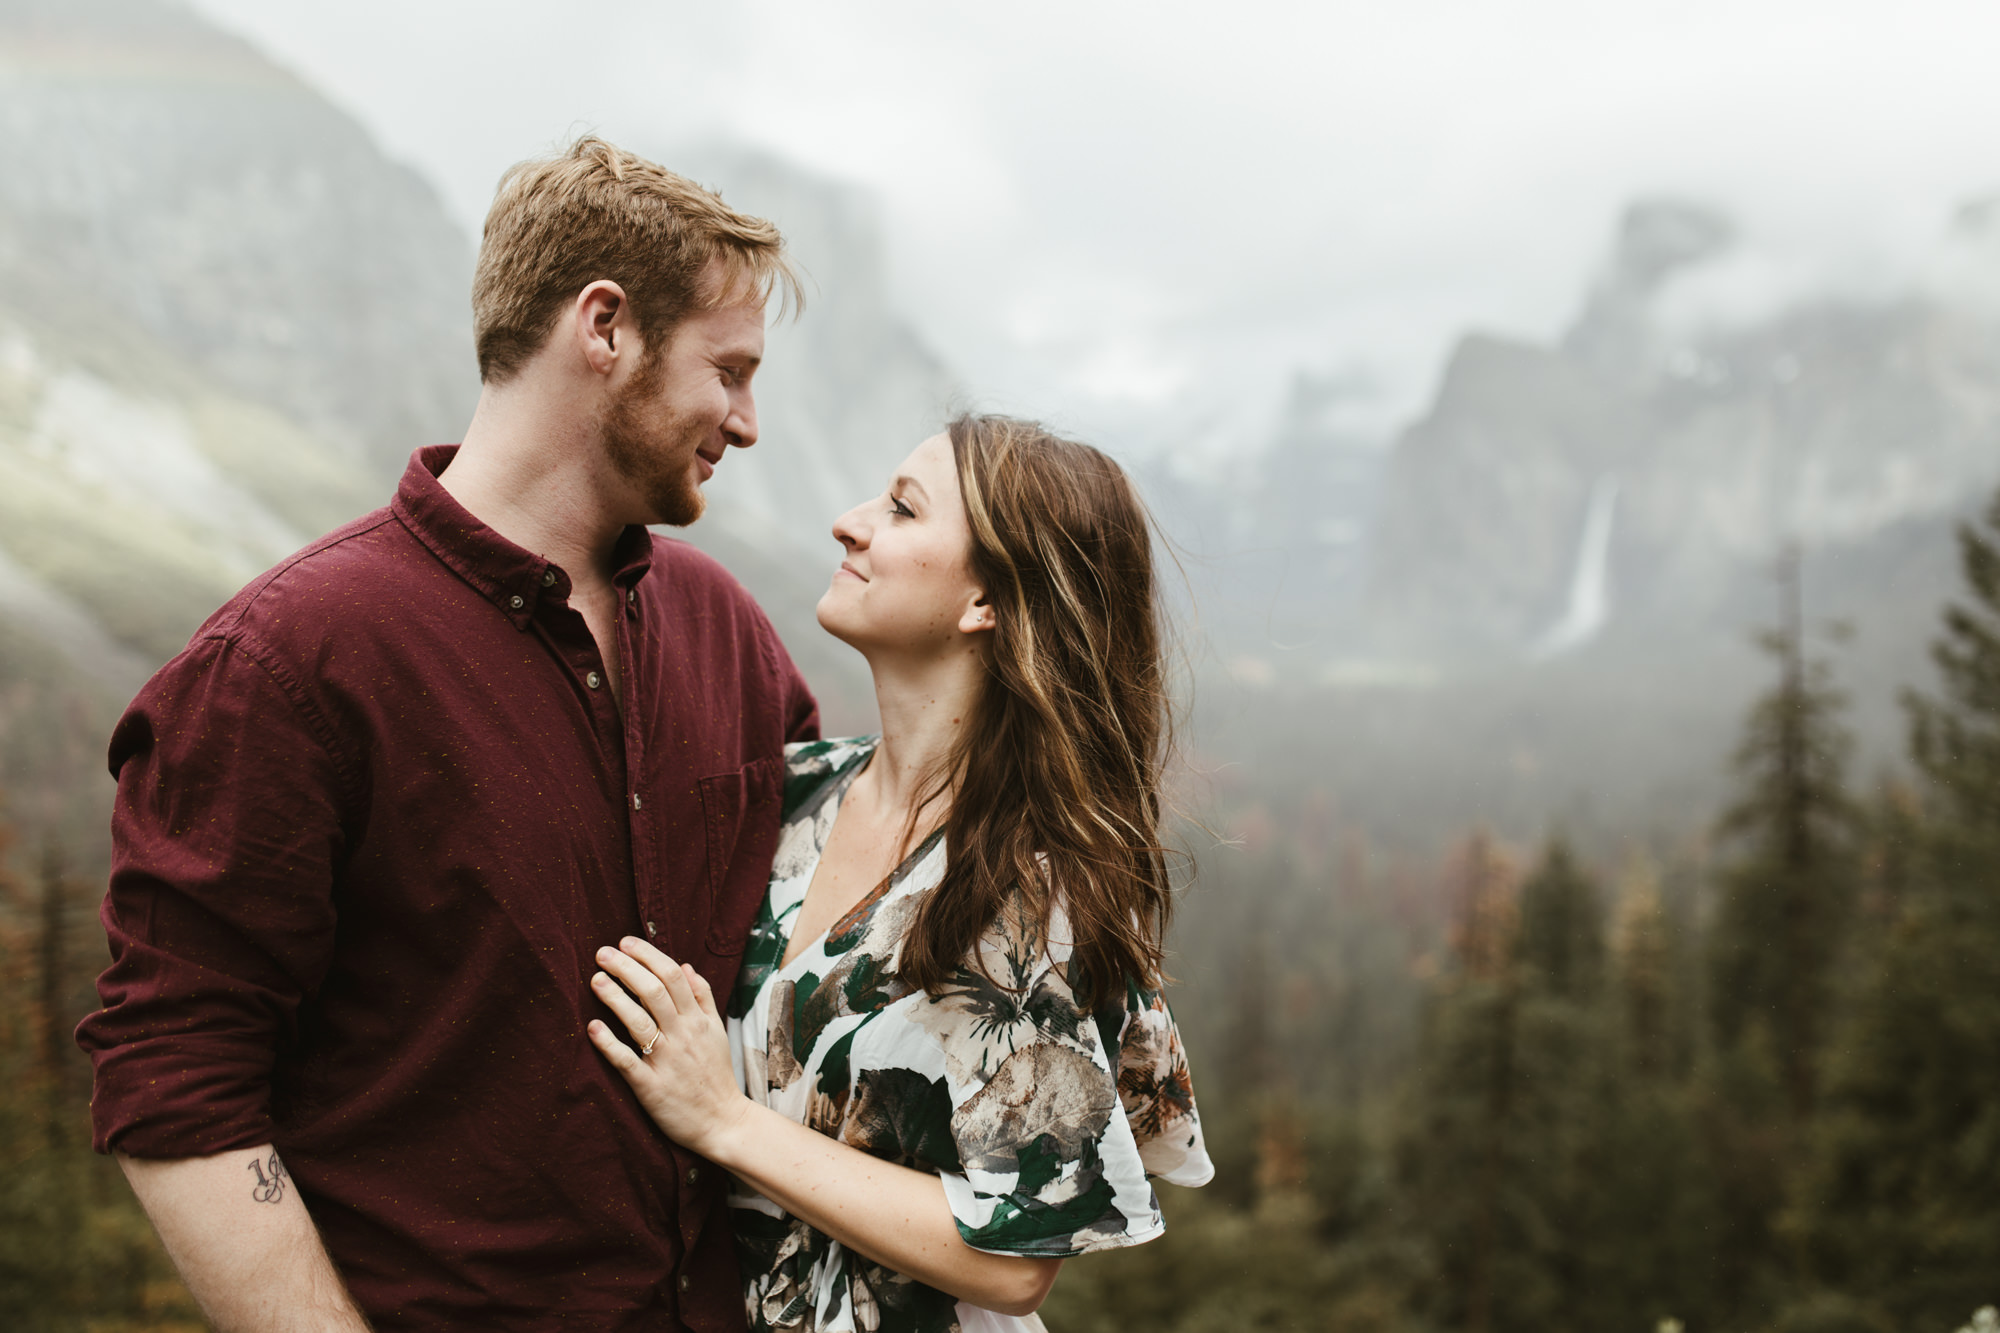 adventure engagement photo session in yosemite national park // california wedding and elopement photographer // www.abbihearne.com